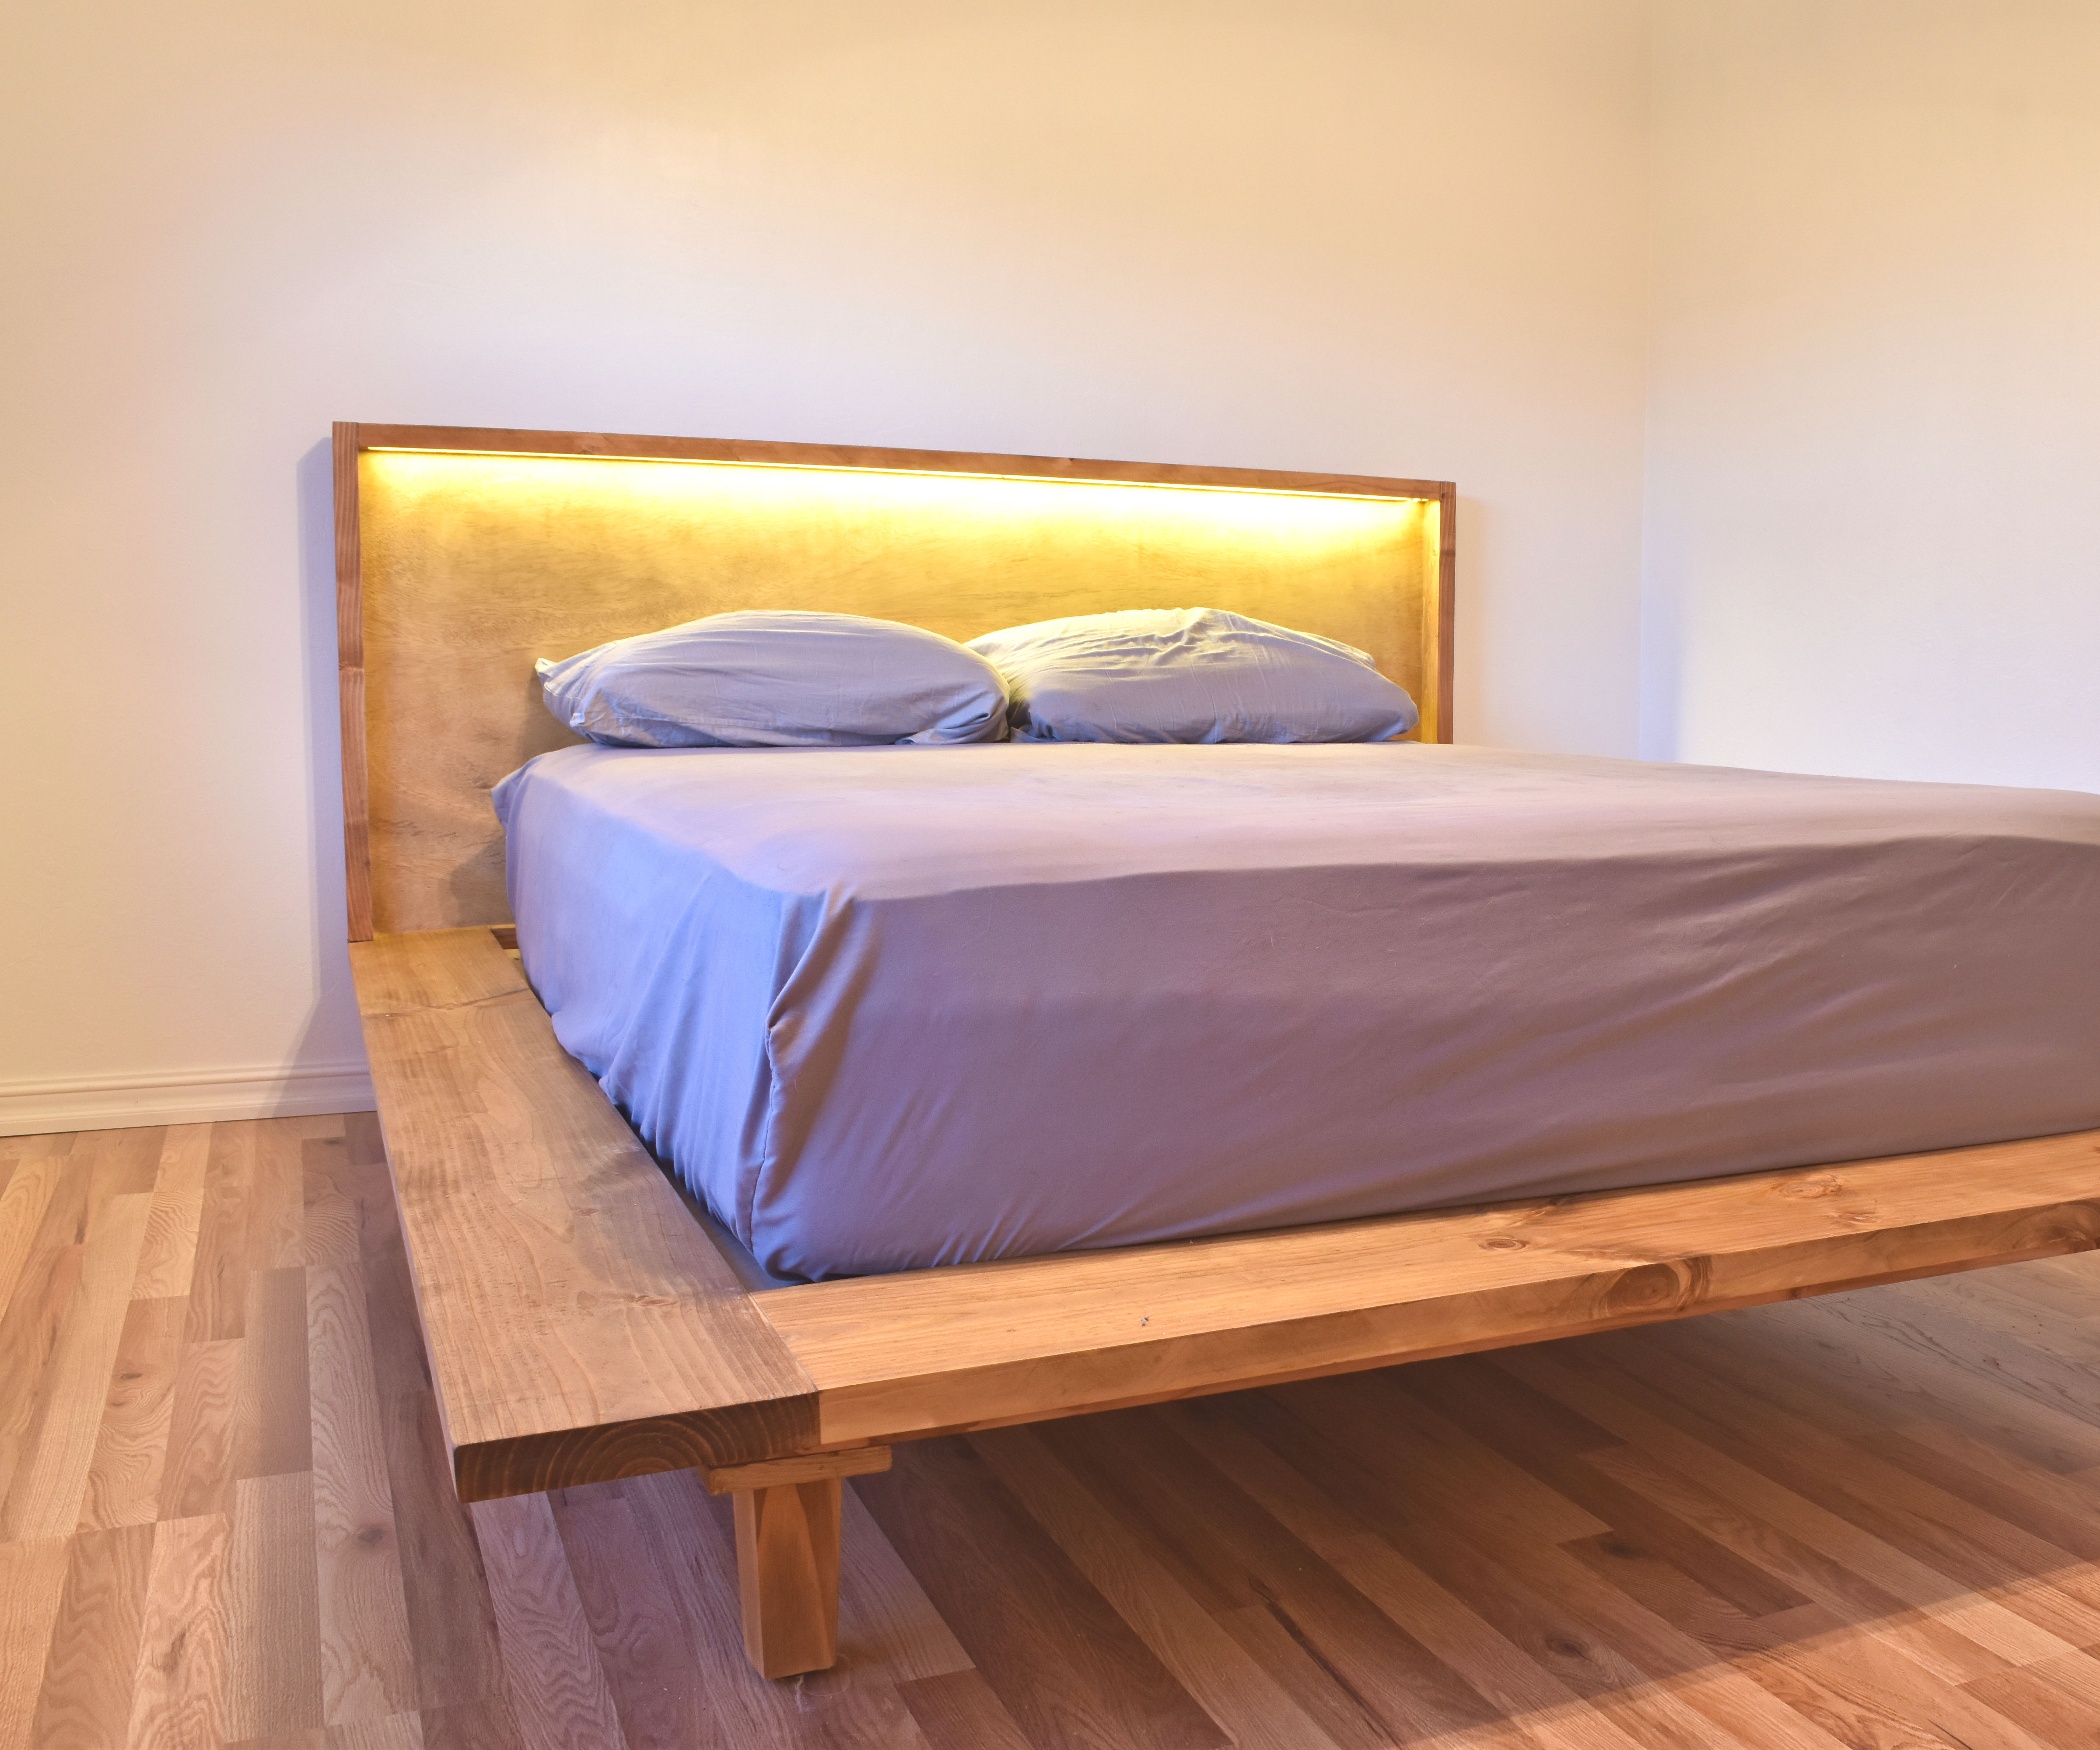 How To Build A Modern Platform Bed 4 Steps With Pictures Instructables